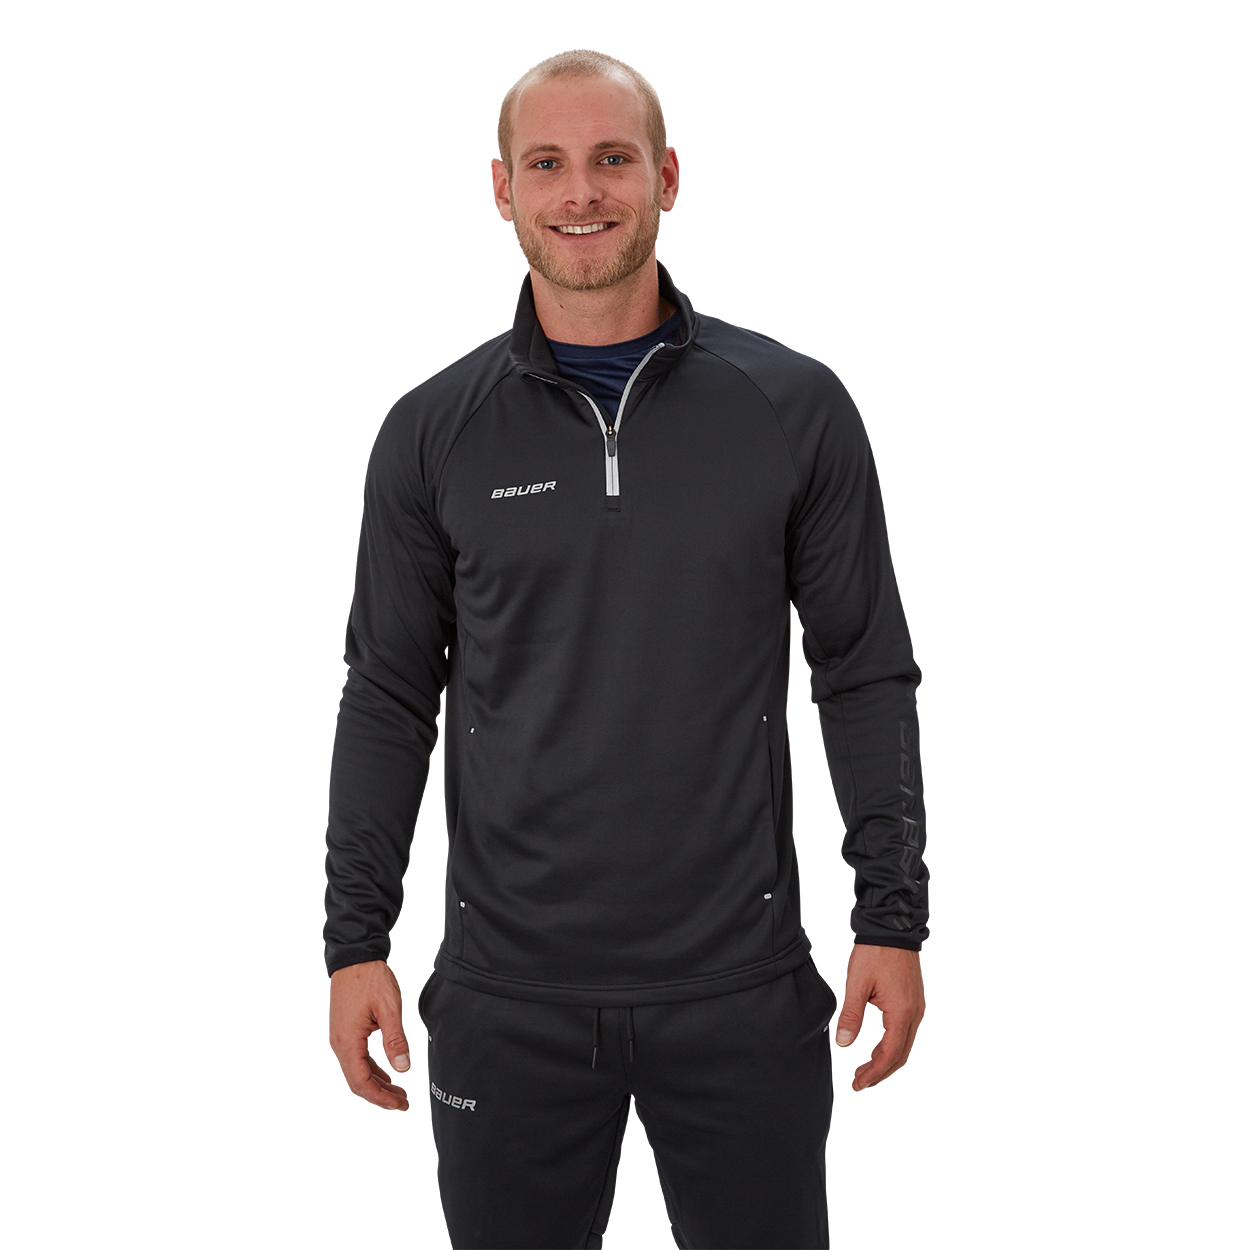 Bauer Vapor Fleece Quarter Zip,Schwarz,Medium